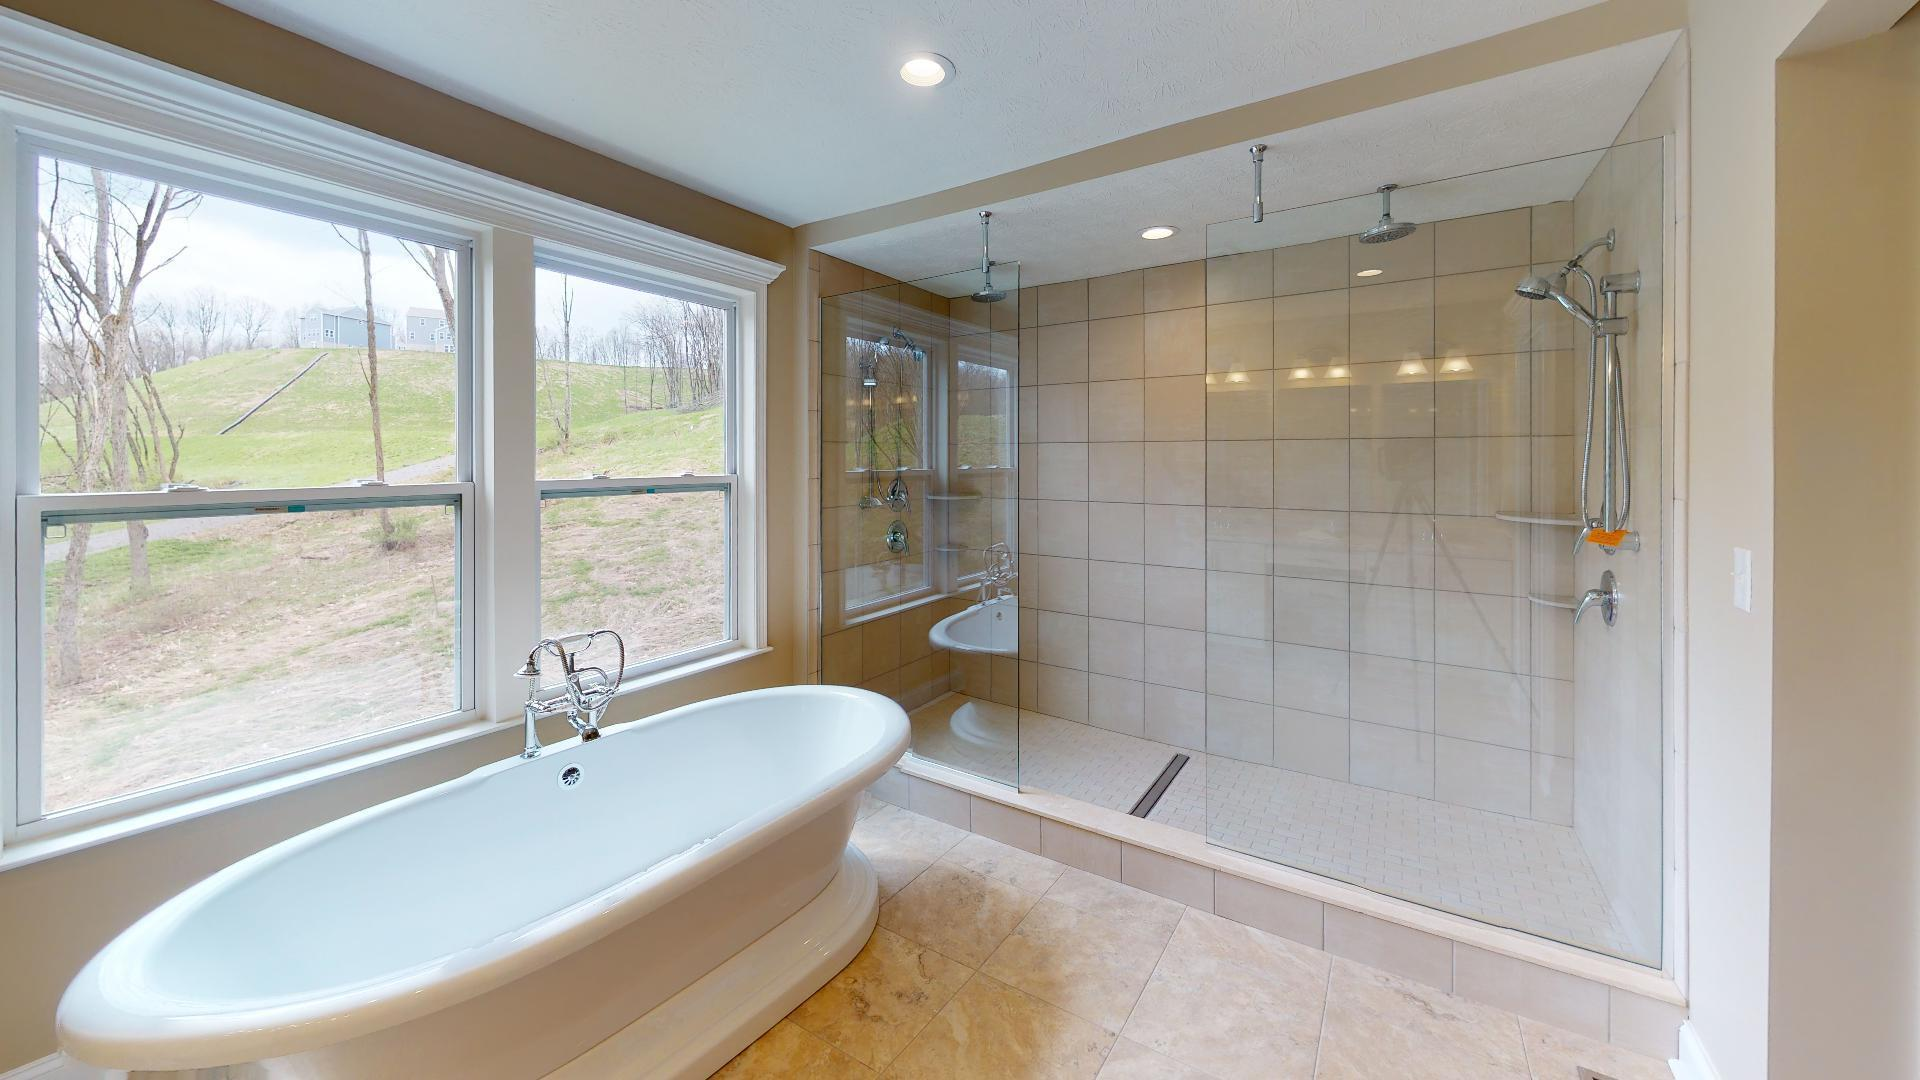 Bathroom featured in the Hoover By Maronda Homes in Pittsburgh, PA